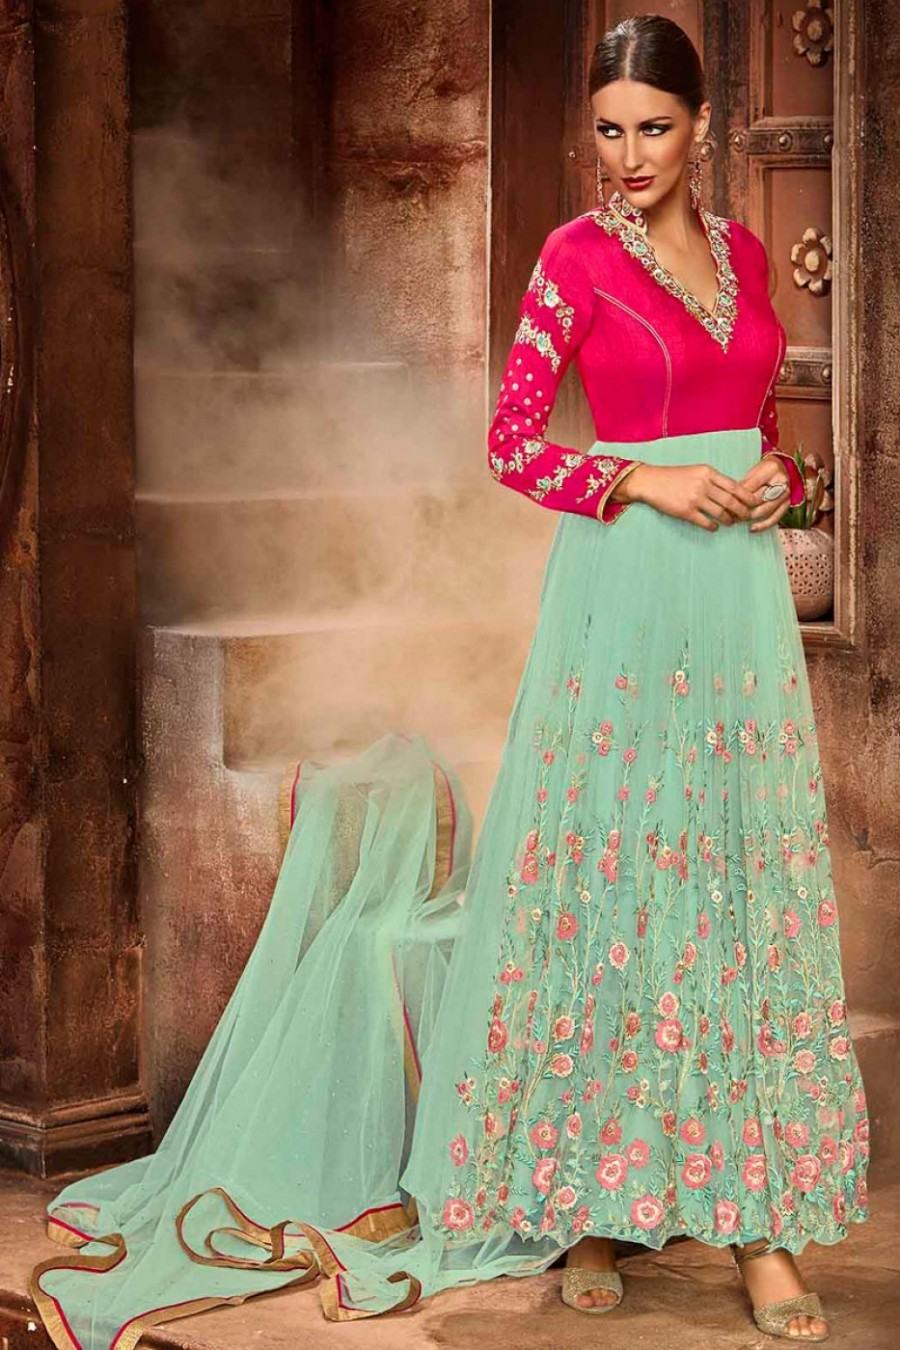 ffdd3a73de Buy Net Designer Partywear Floral Embroidered Anarkali Suit in Sea Green  and Pink Colour Online